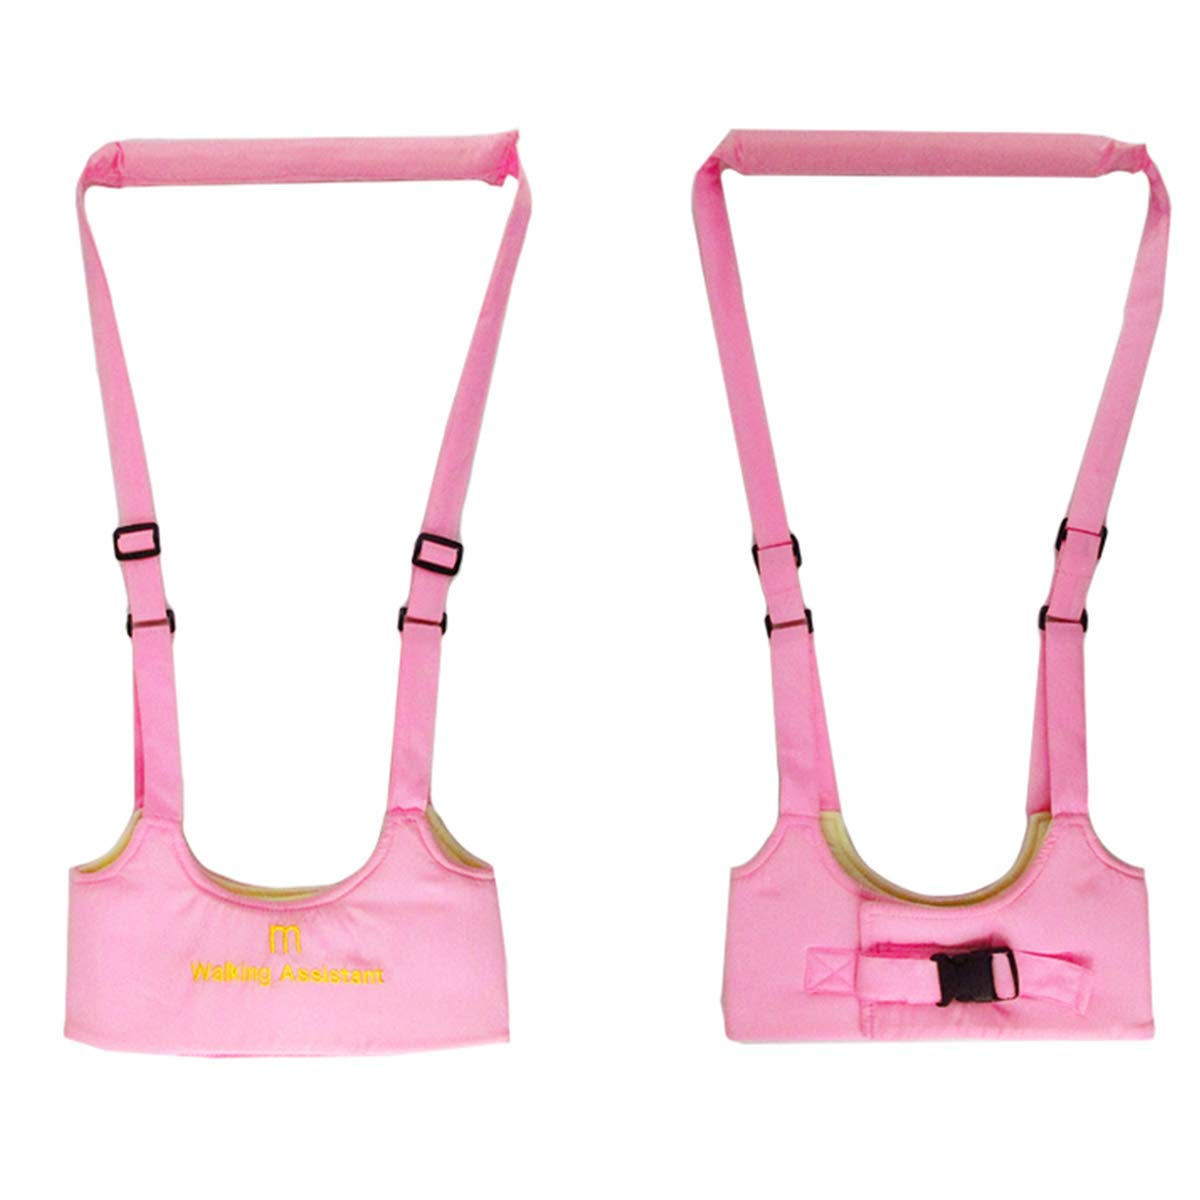 Baby Toddler Learn to Walk Walking Harness Aid Assistant Safety Rein Train Walking Protective Belt (Pink)